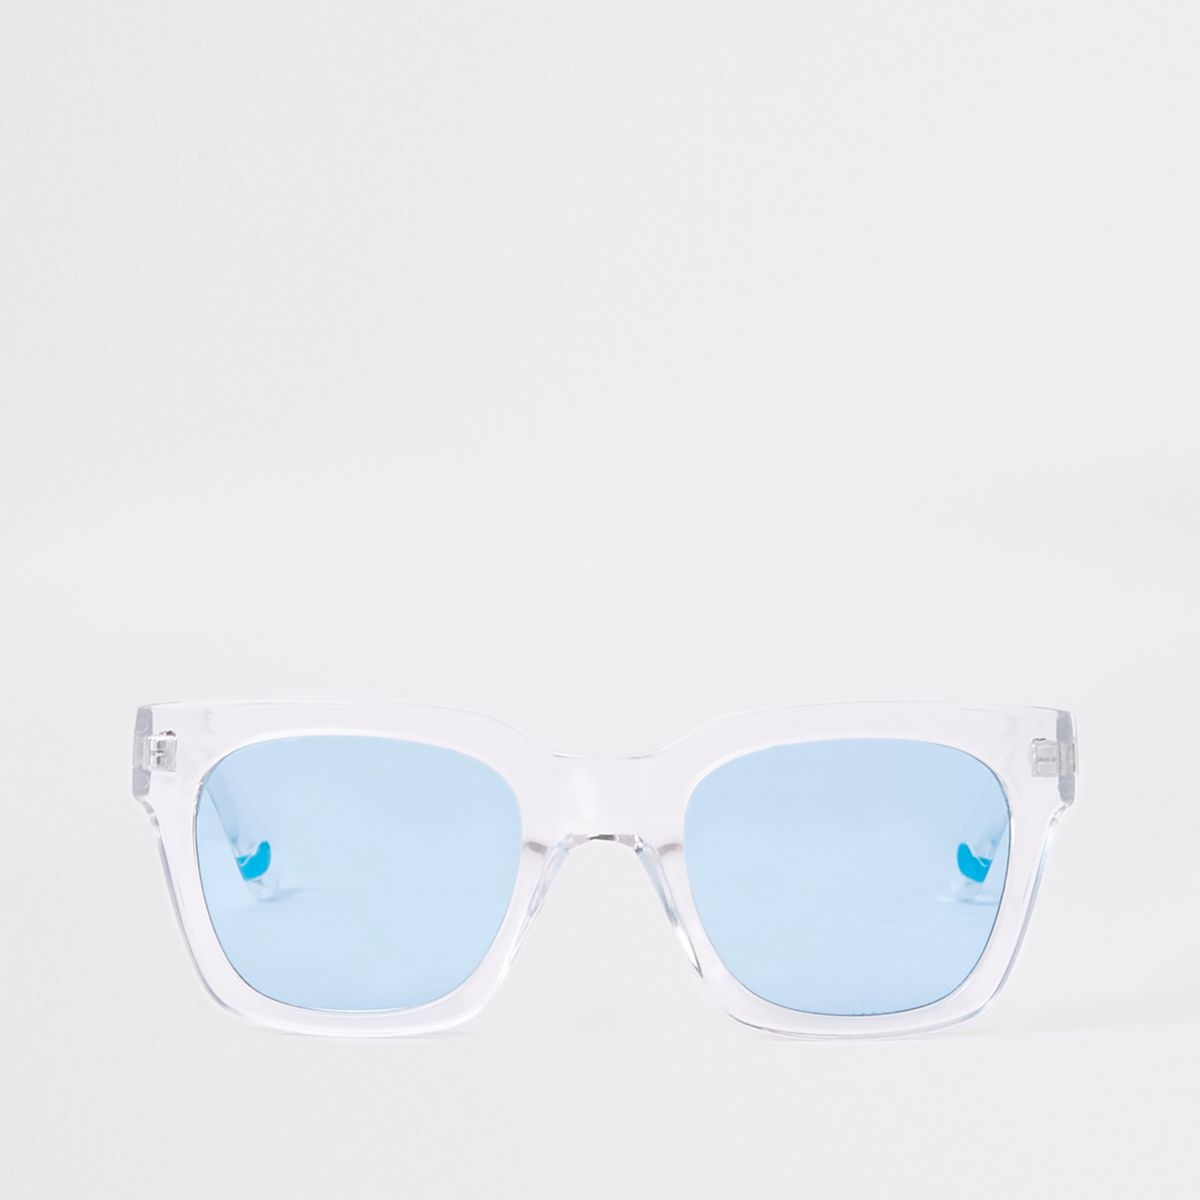 White clear frame blue lens sunglasses - Sunglasses - Sale - men